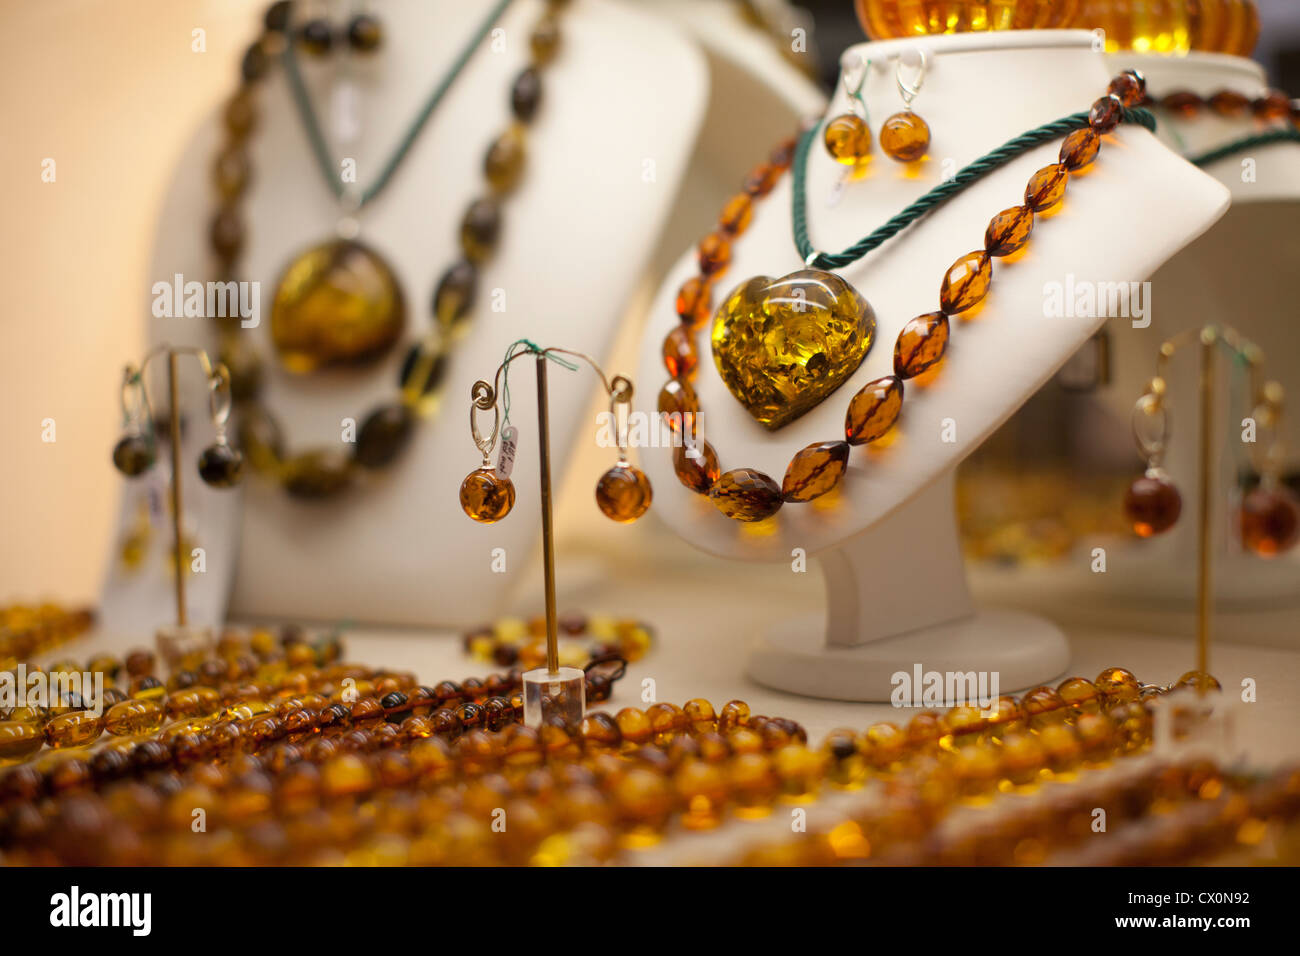 Amber Jewellery Vilnius Lithuania - Stock Image